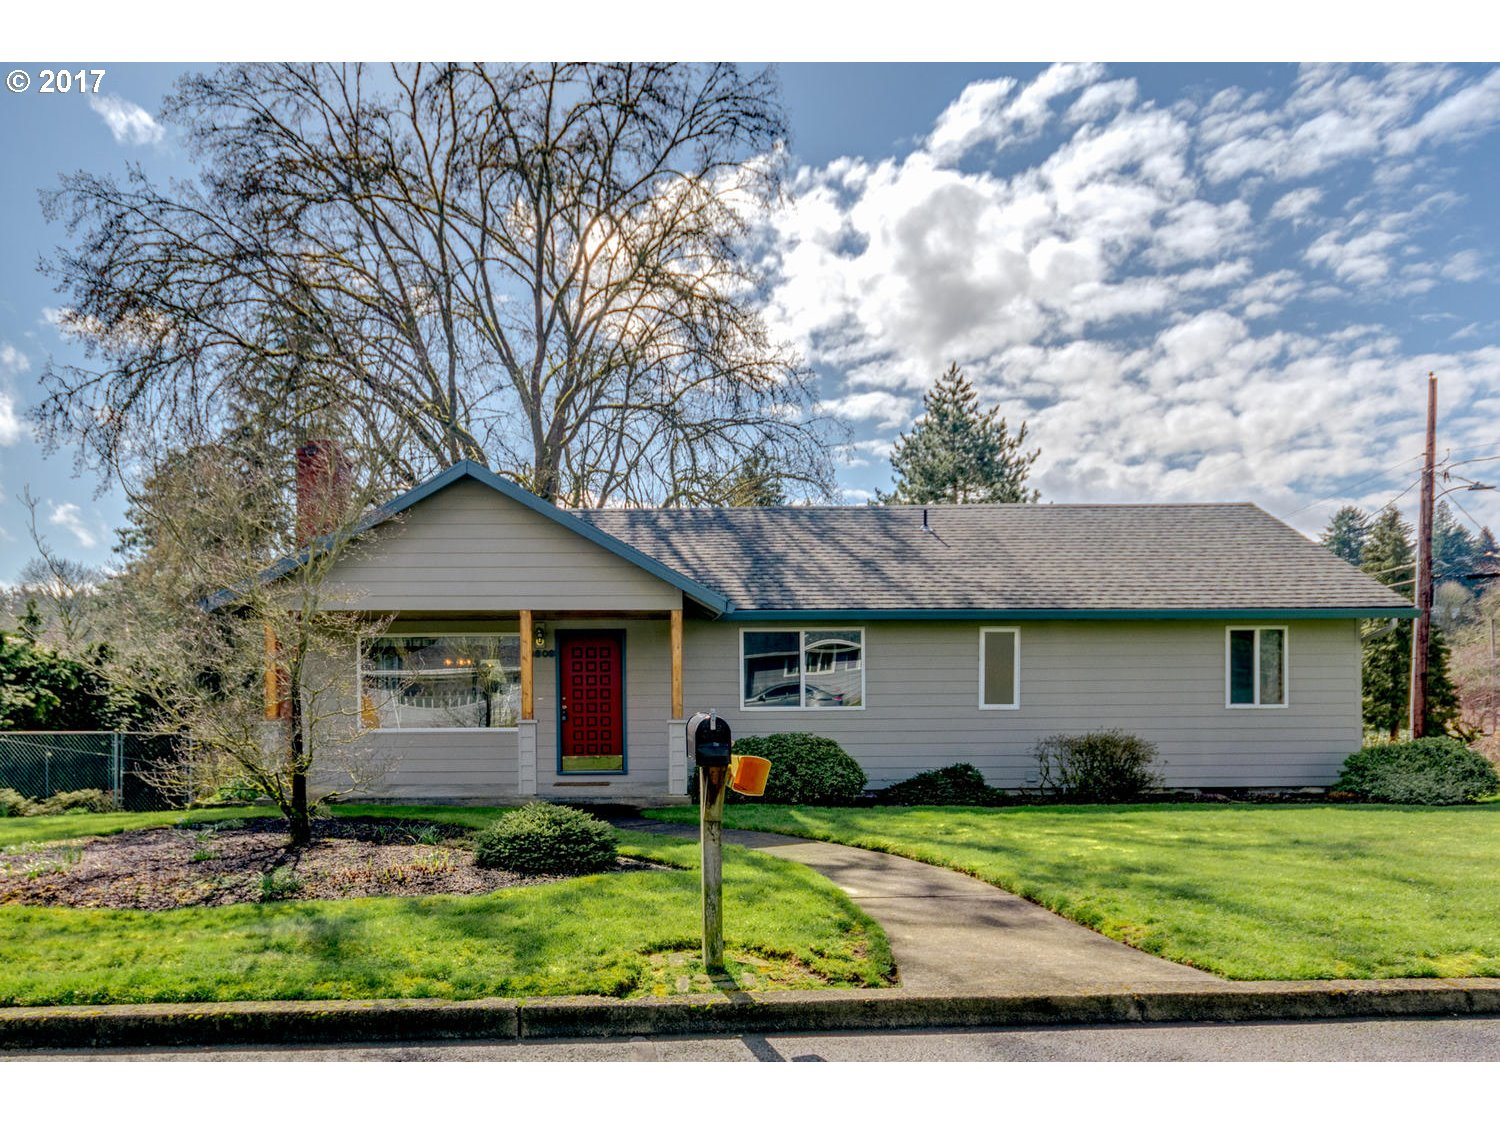 2334 sq. ft 3 bedrooms 2 bathrooms  House For Sale, Milwaukie, OR